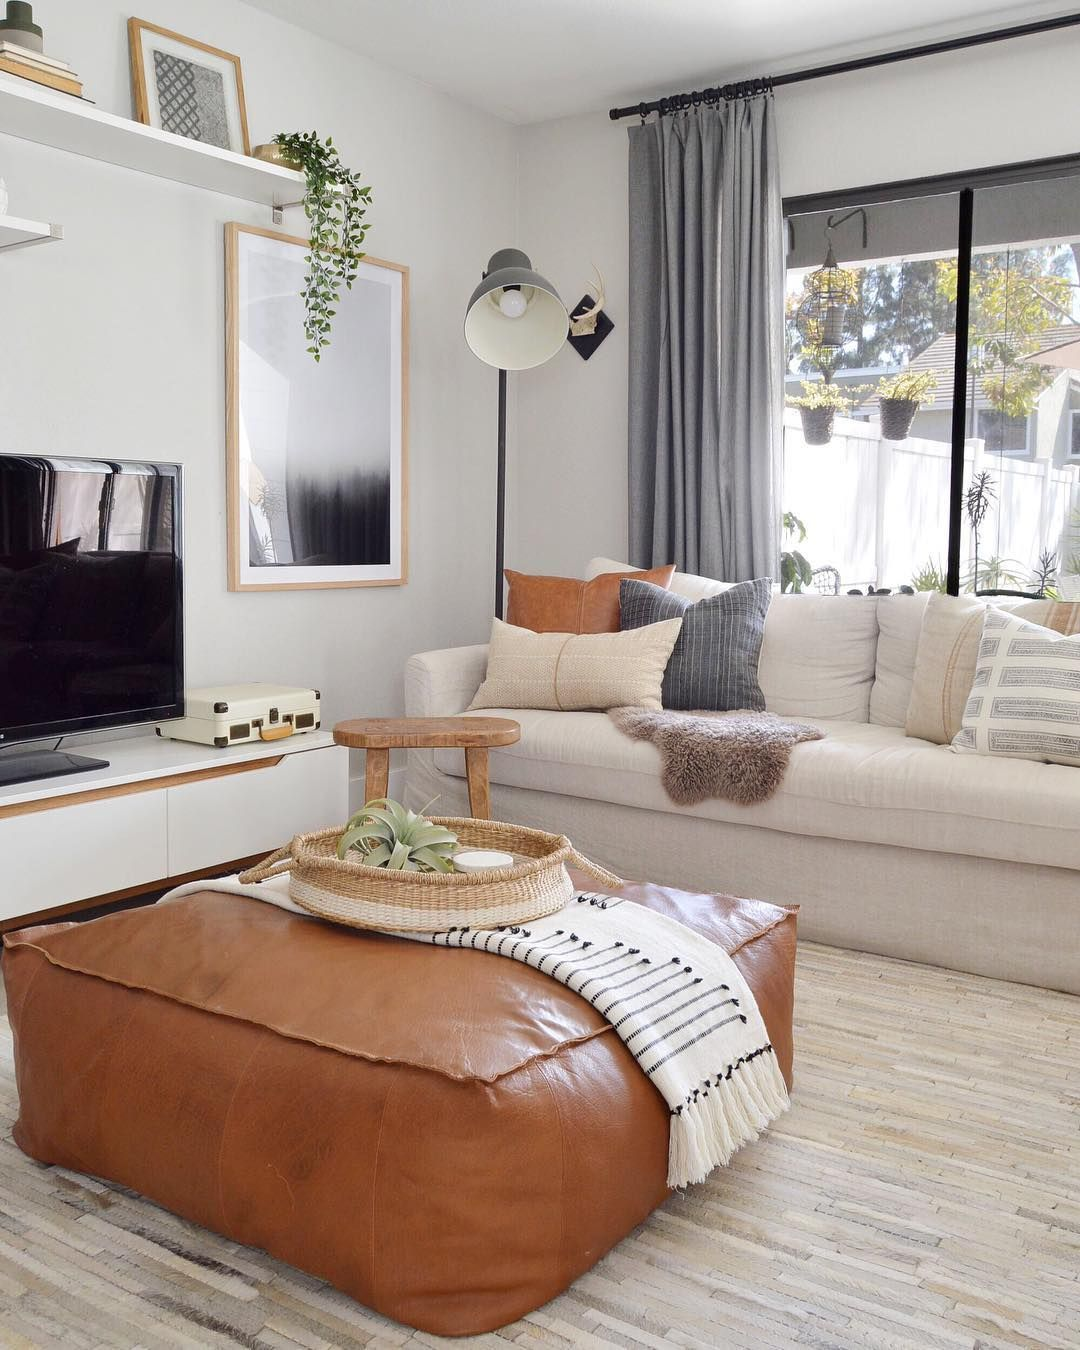 11 Living Rooms You'll Want to Copy Immediately